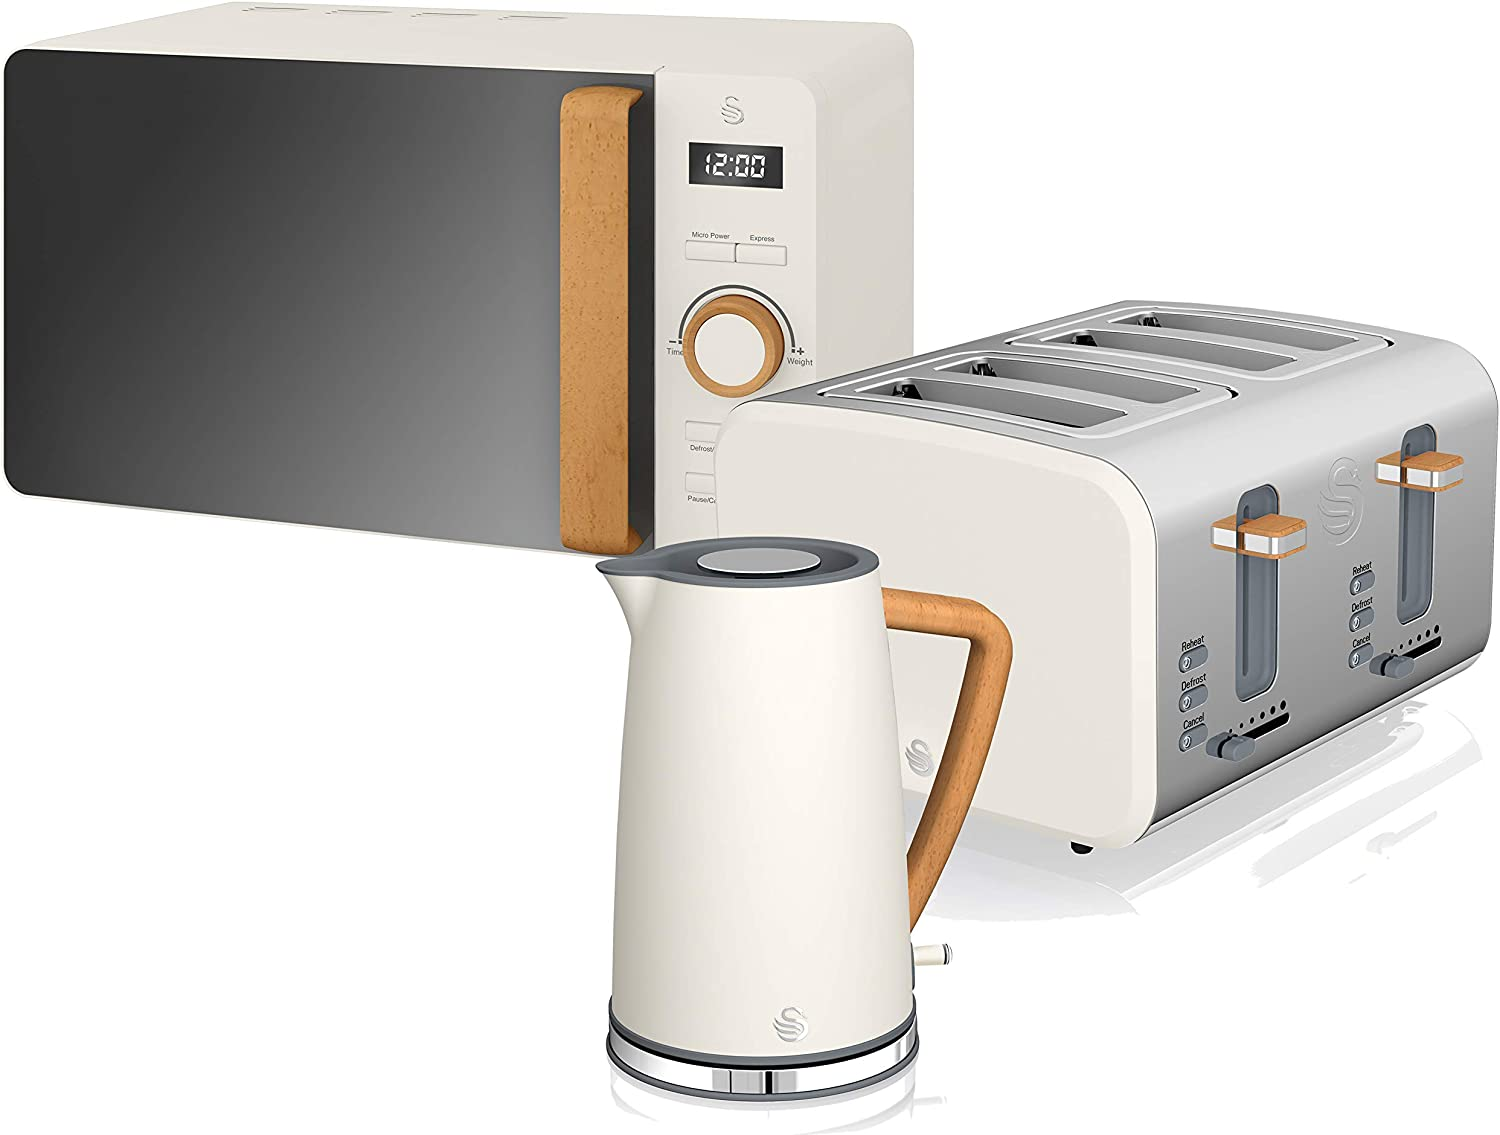 Swan STRP1060WHTN Nordic Kitchen Bundle with 1.7 Litre Jug Kettle 2 Slice Toaster and 800W Microwave Wood Effect Handle Soft Touch Matte Finish Cotton White